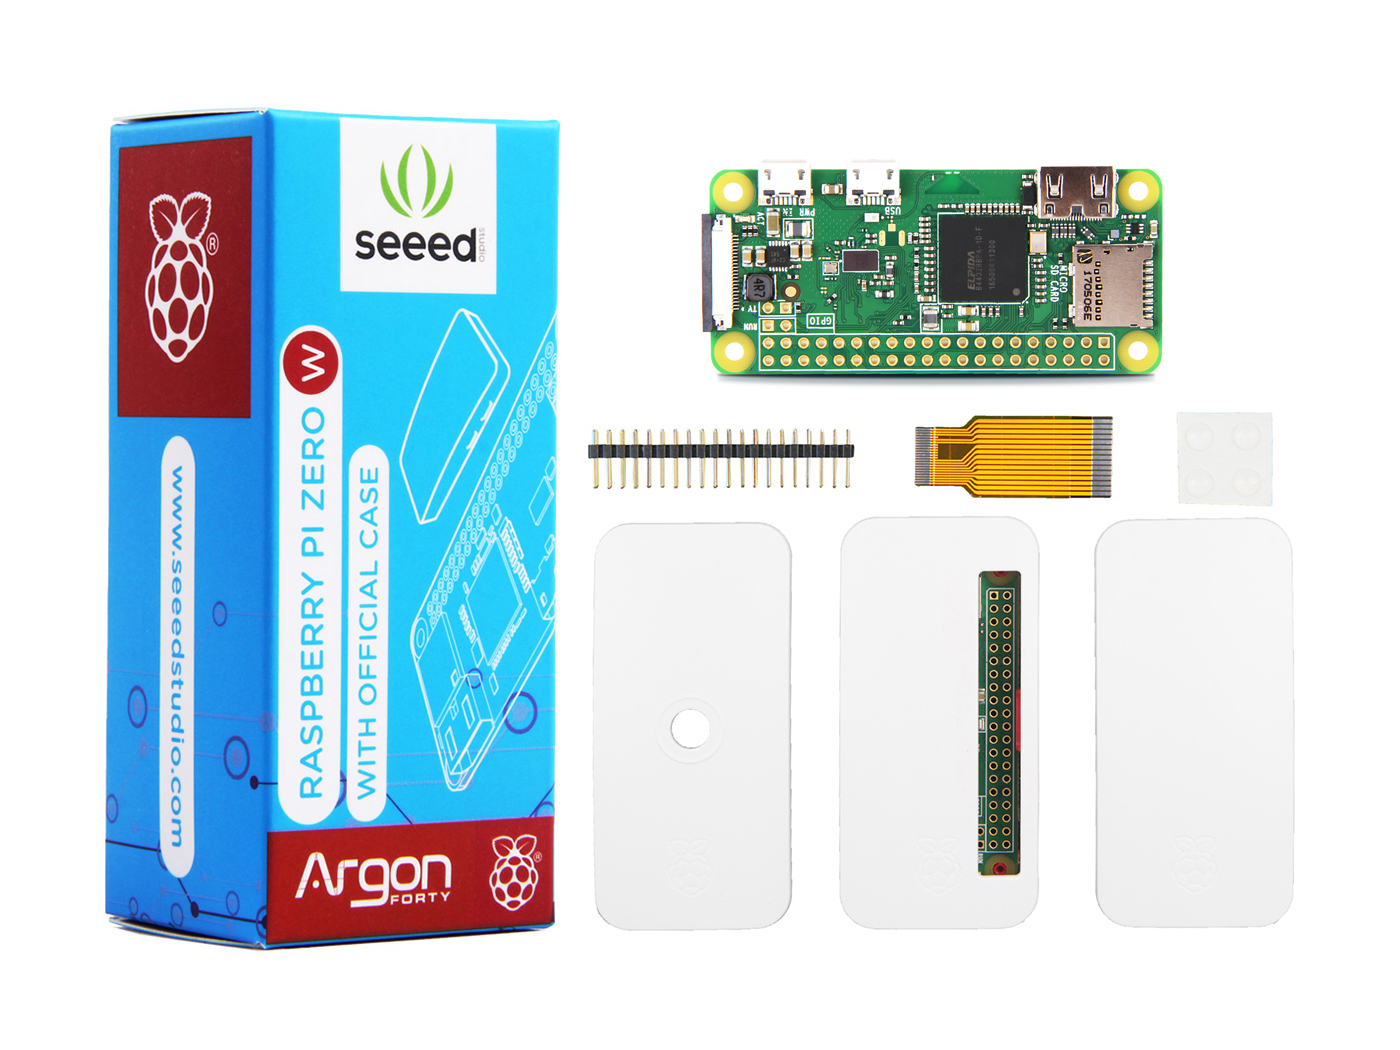 Grovepi Zero Base Kit Kits Seeed Studio Degree Electronics Forum Circuits Projects And Microcontrollers Seeedstudio Raspberry Pi W With Official Case